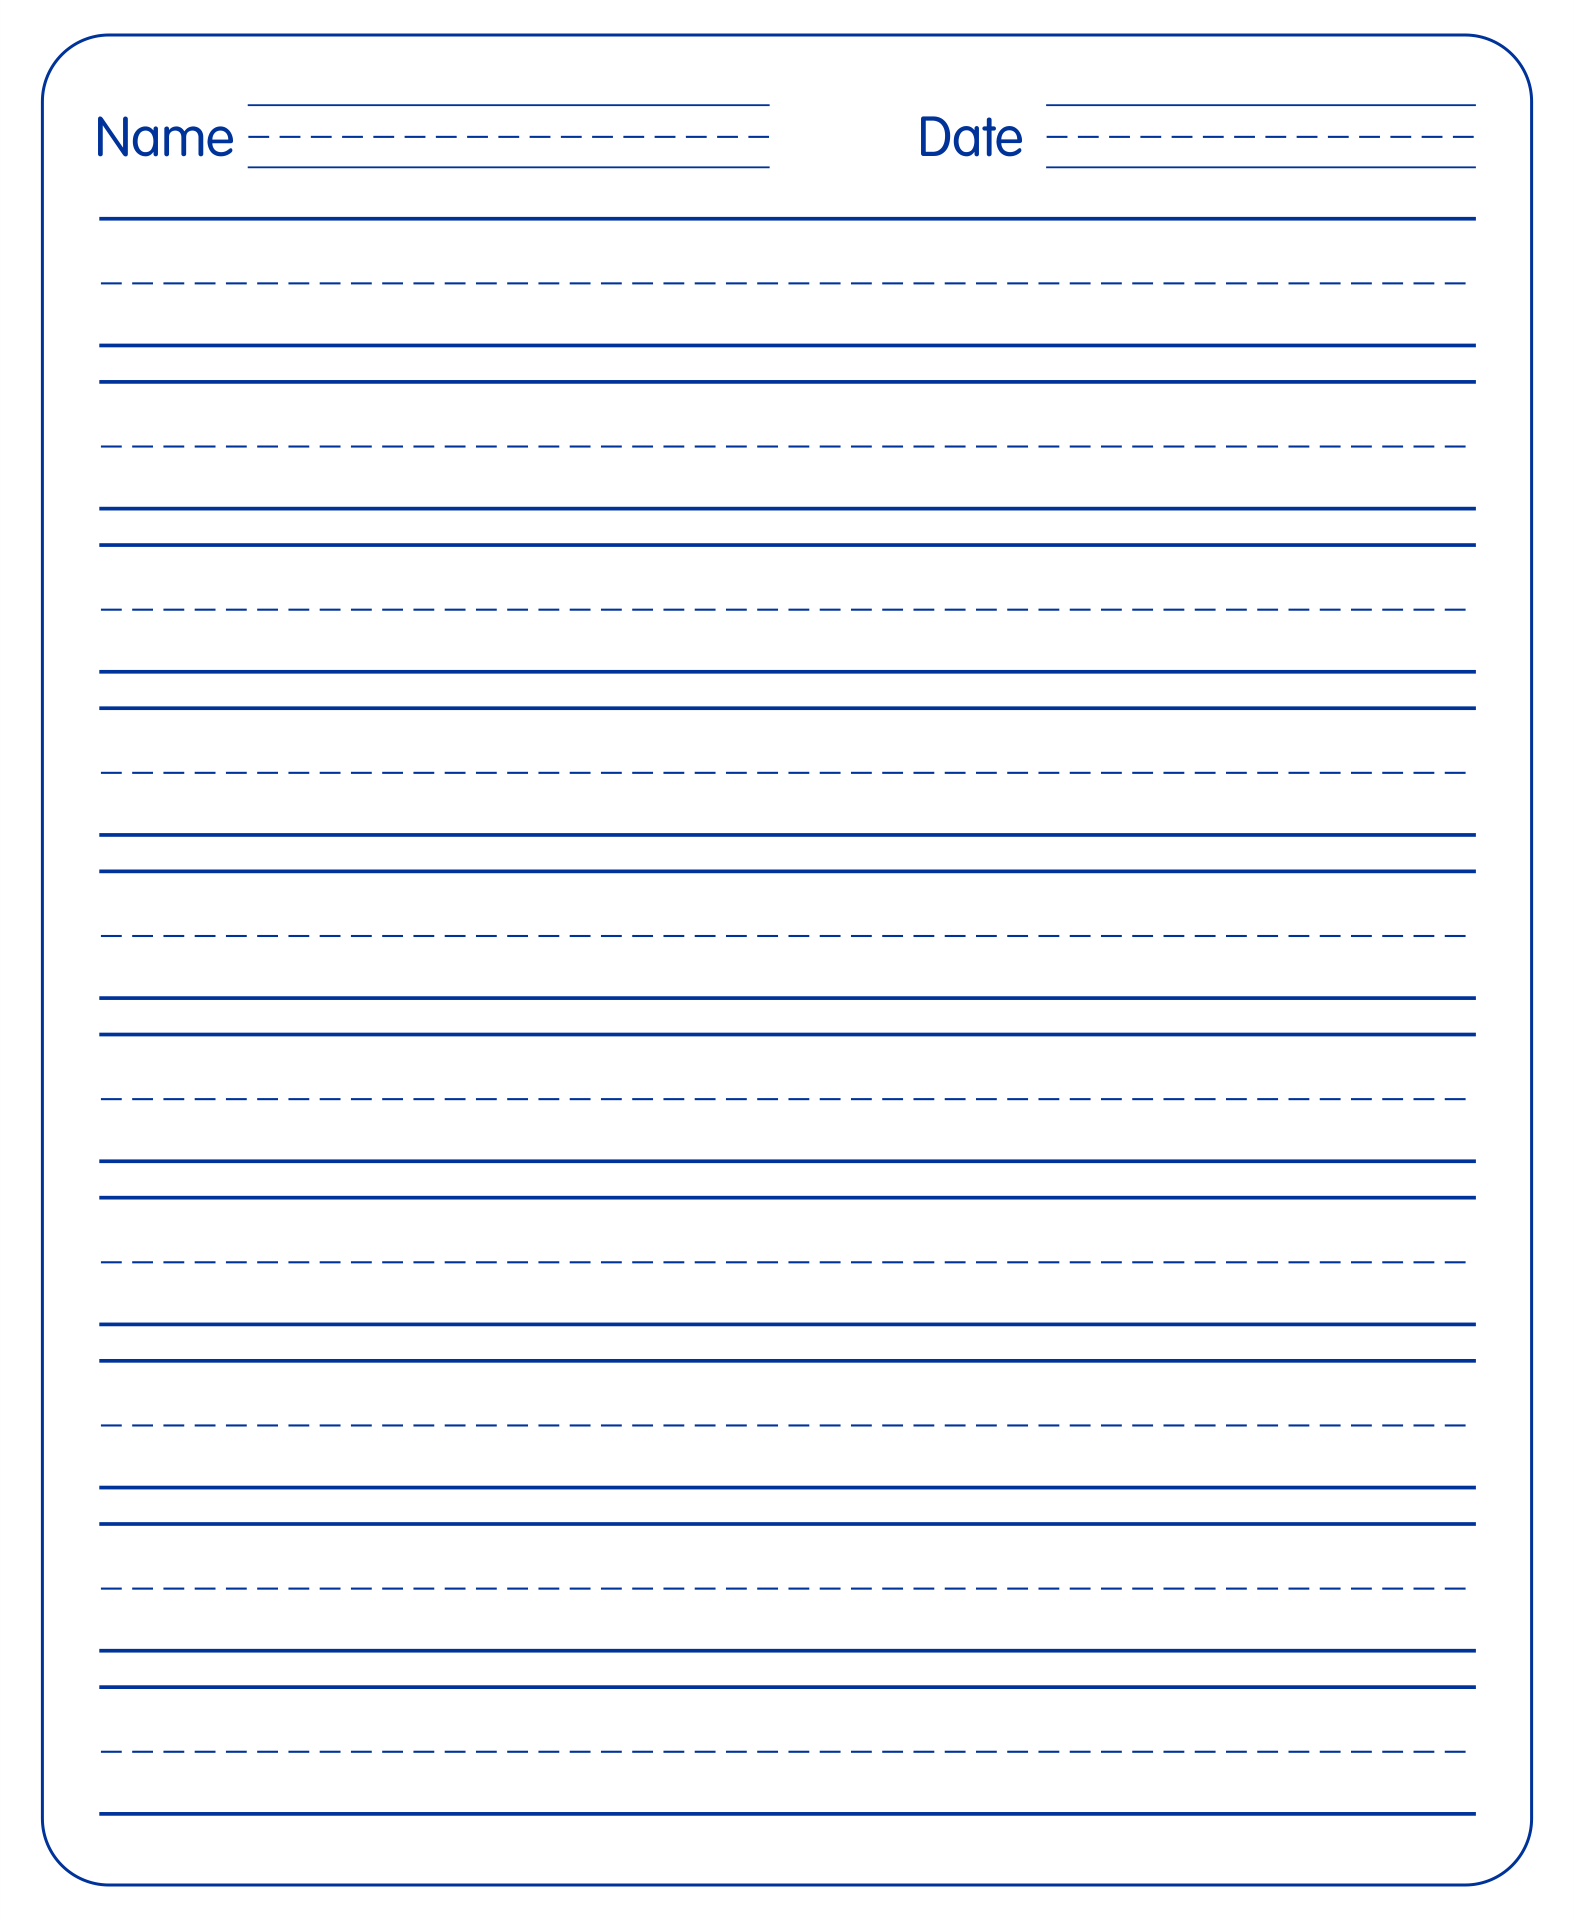 free printable handwriting paper for kids